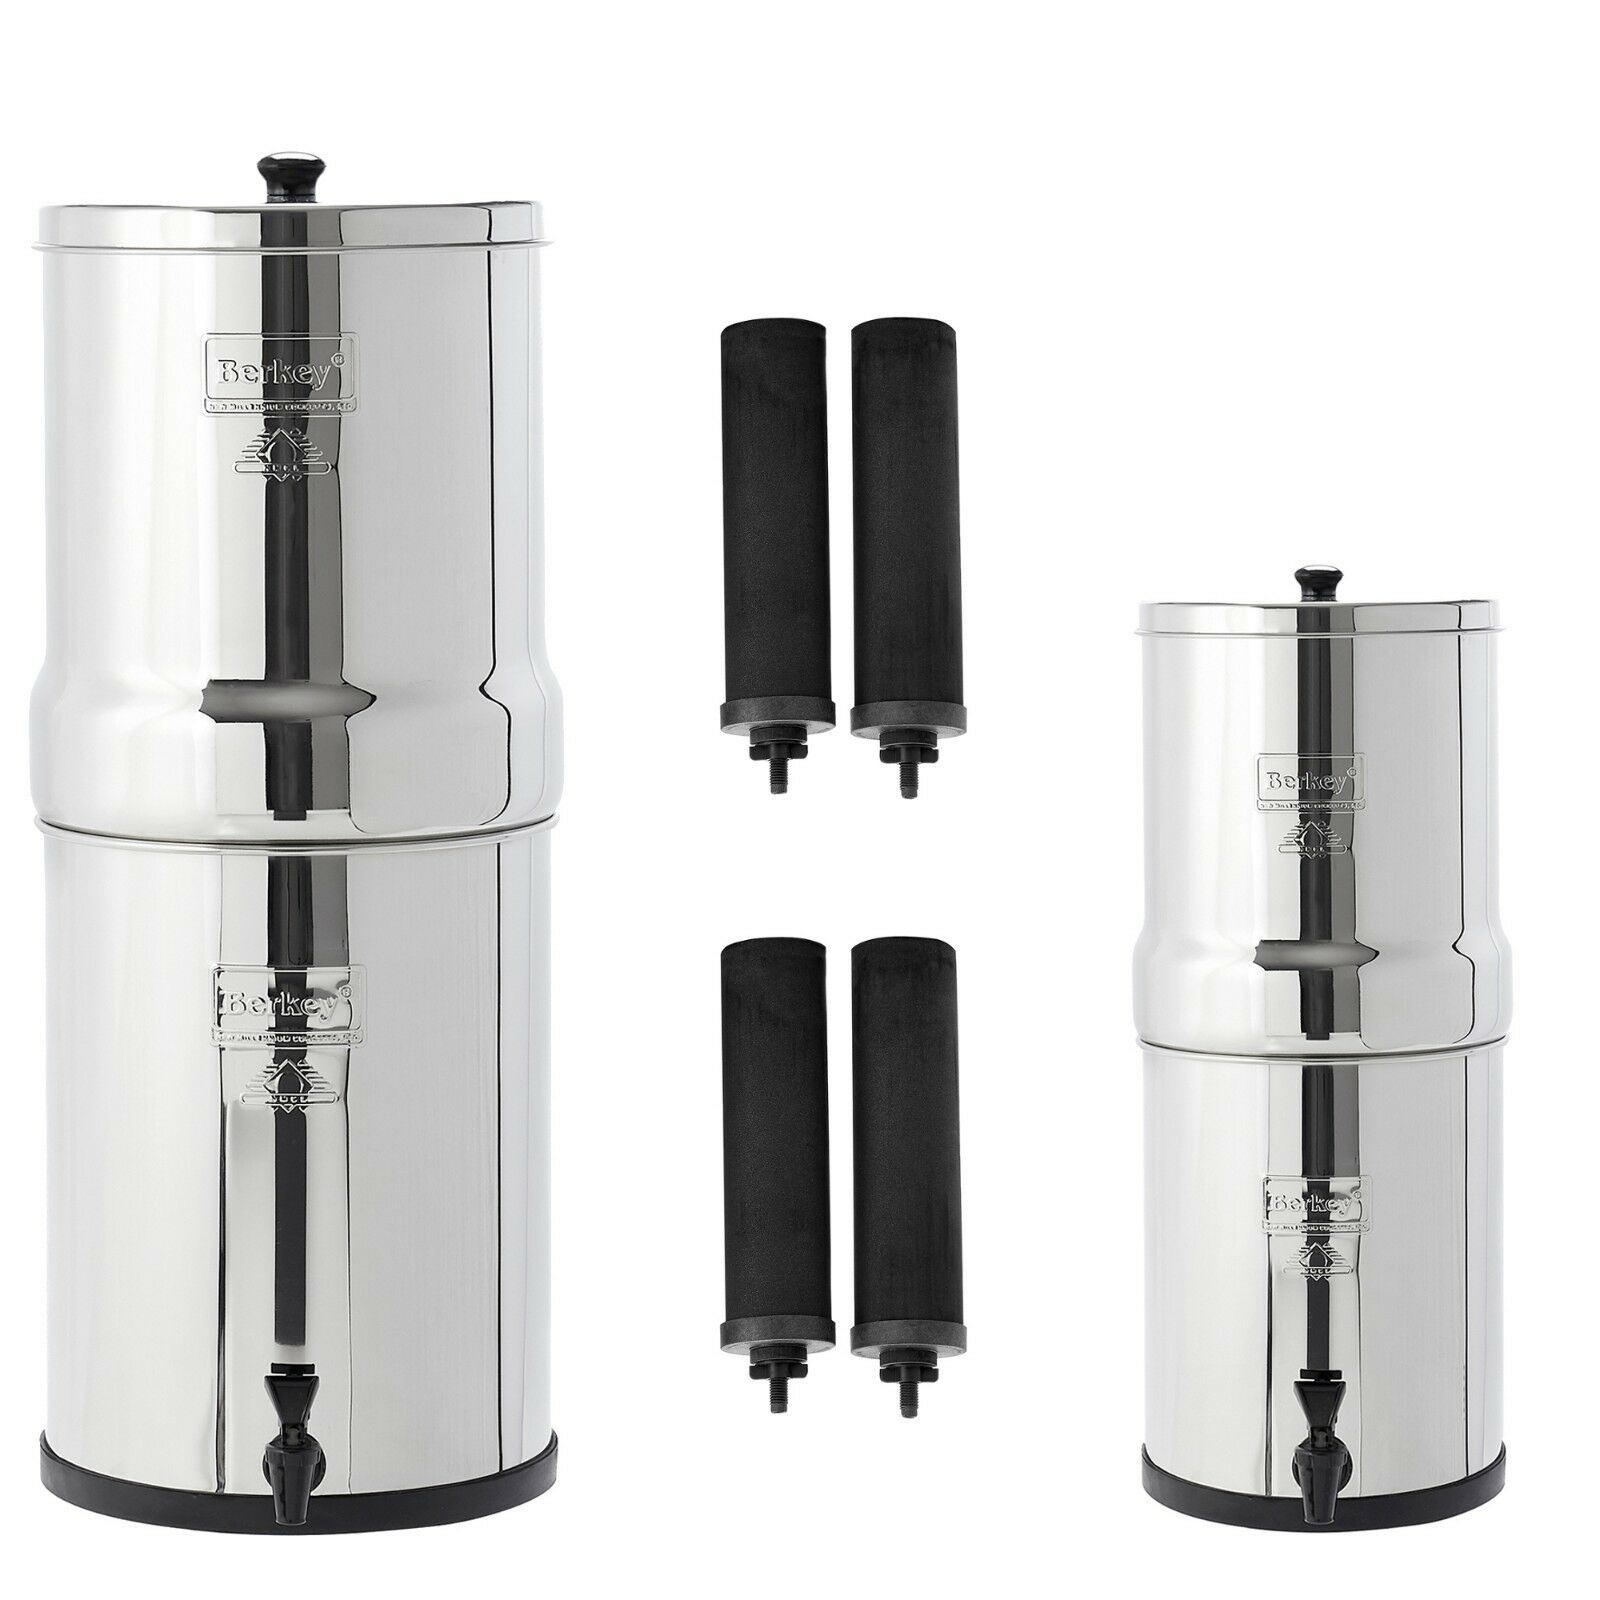 Imperial & Travel Berkey Water Filter Systems Bundle - 5% OFF